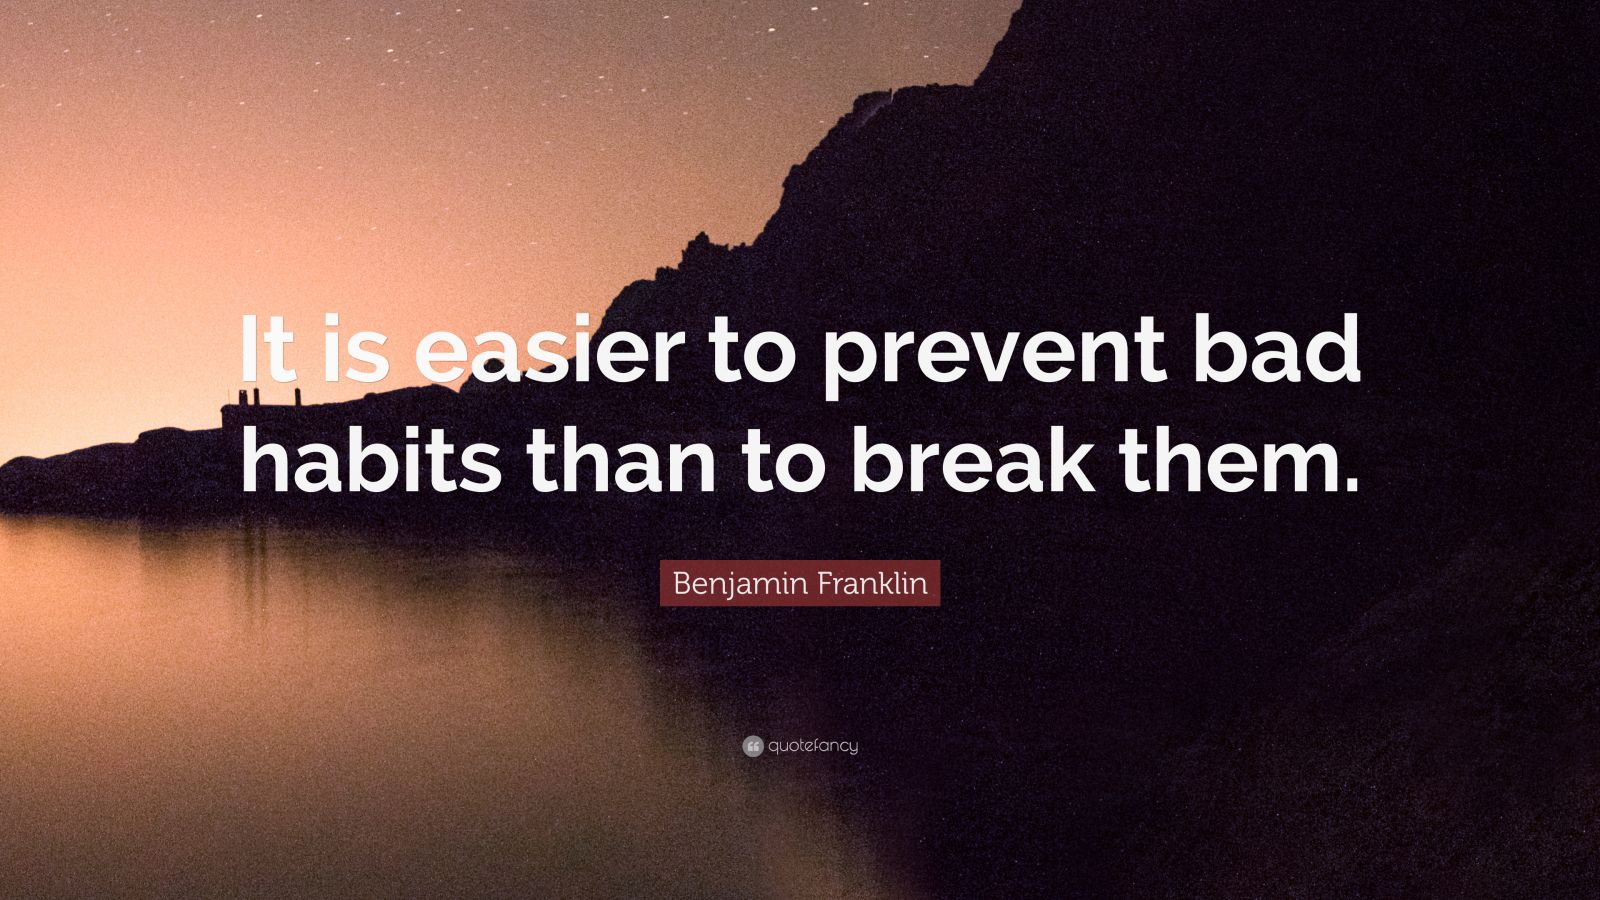 """Benjamin Franklin Quote: """"It is easier to prevent bad habits than to break them."""""""